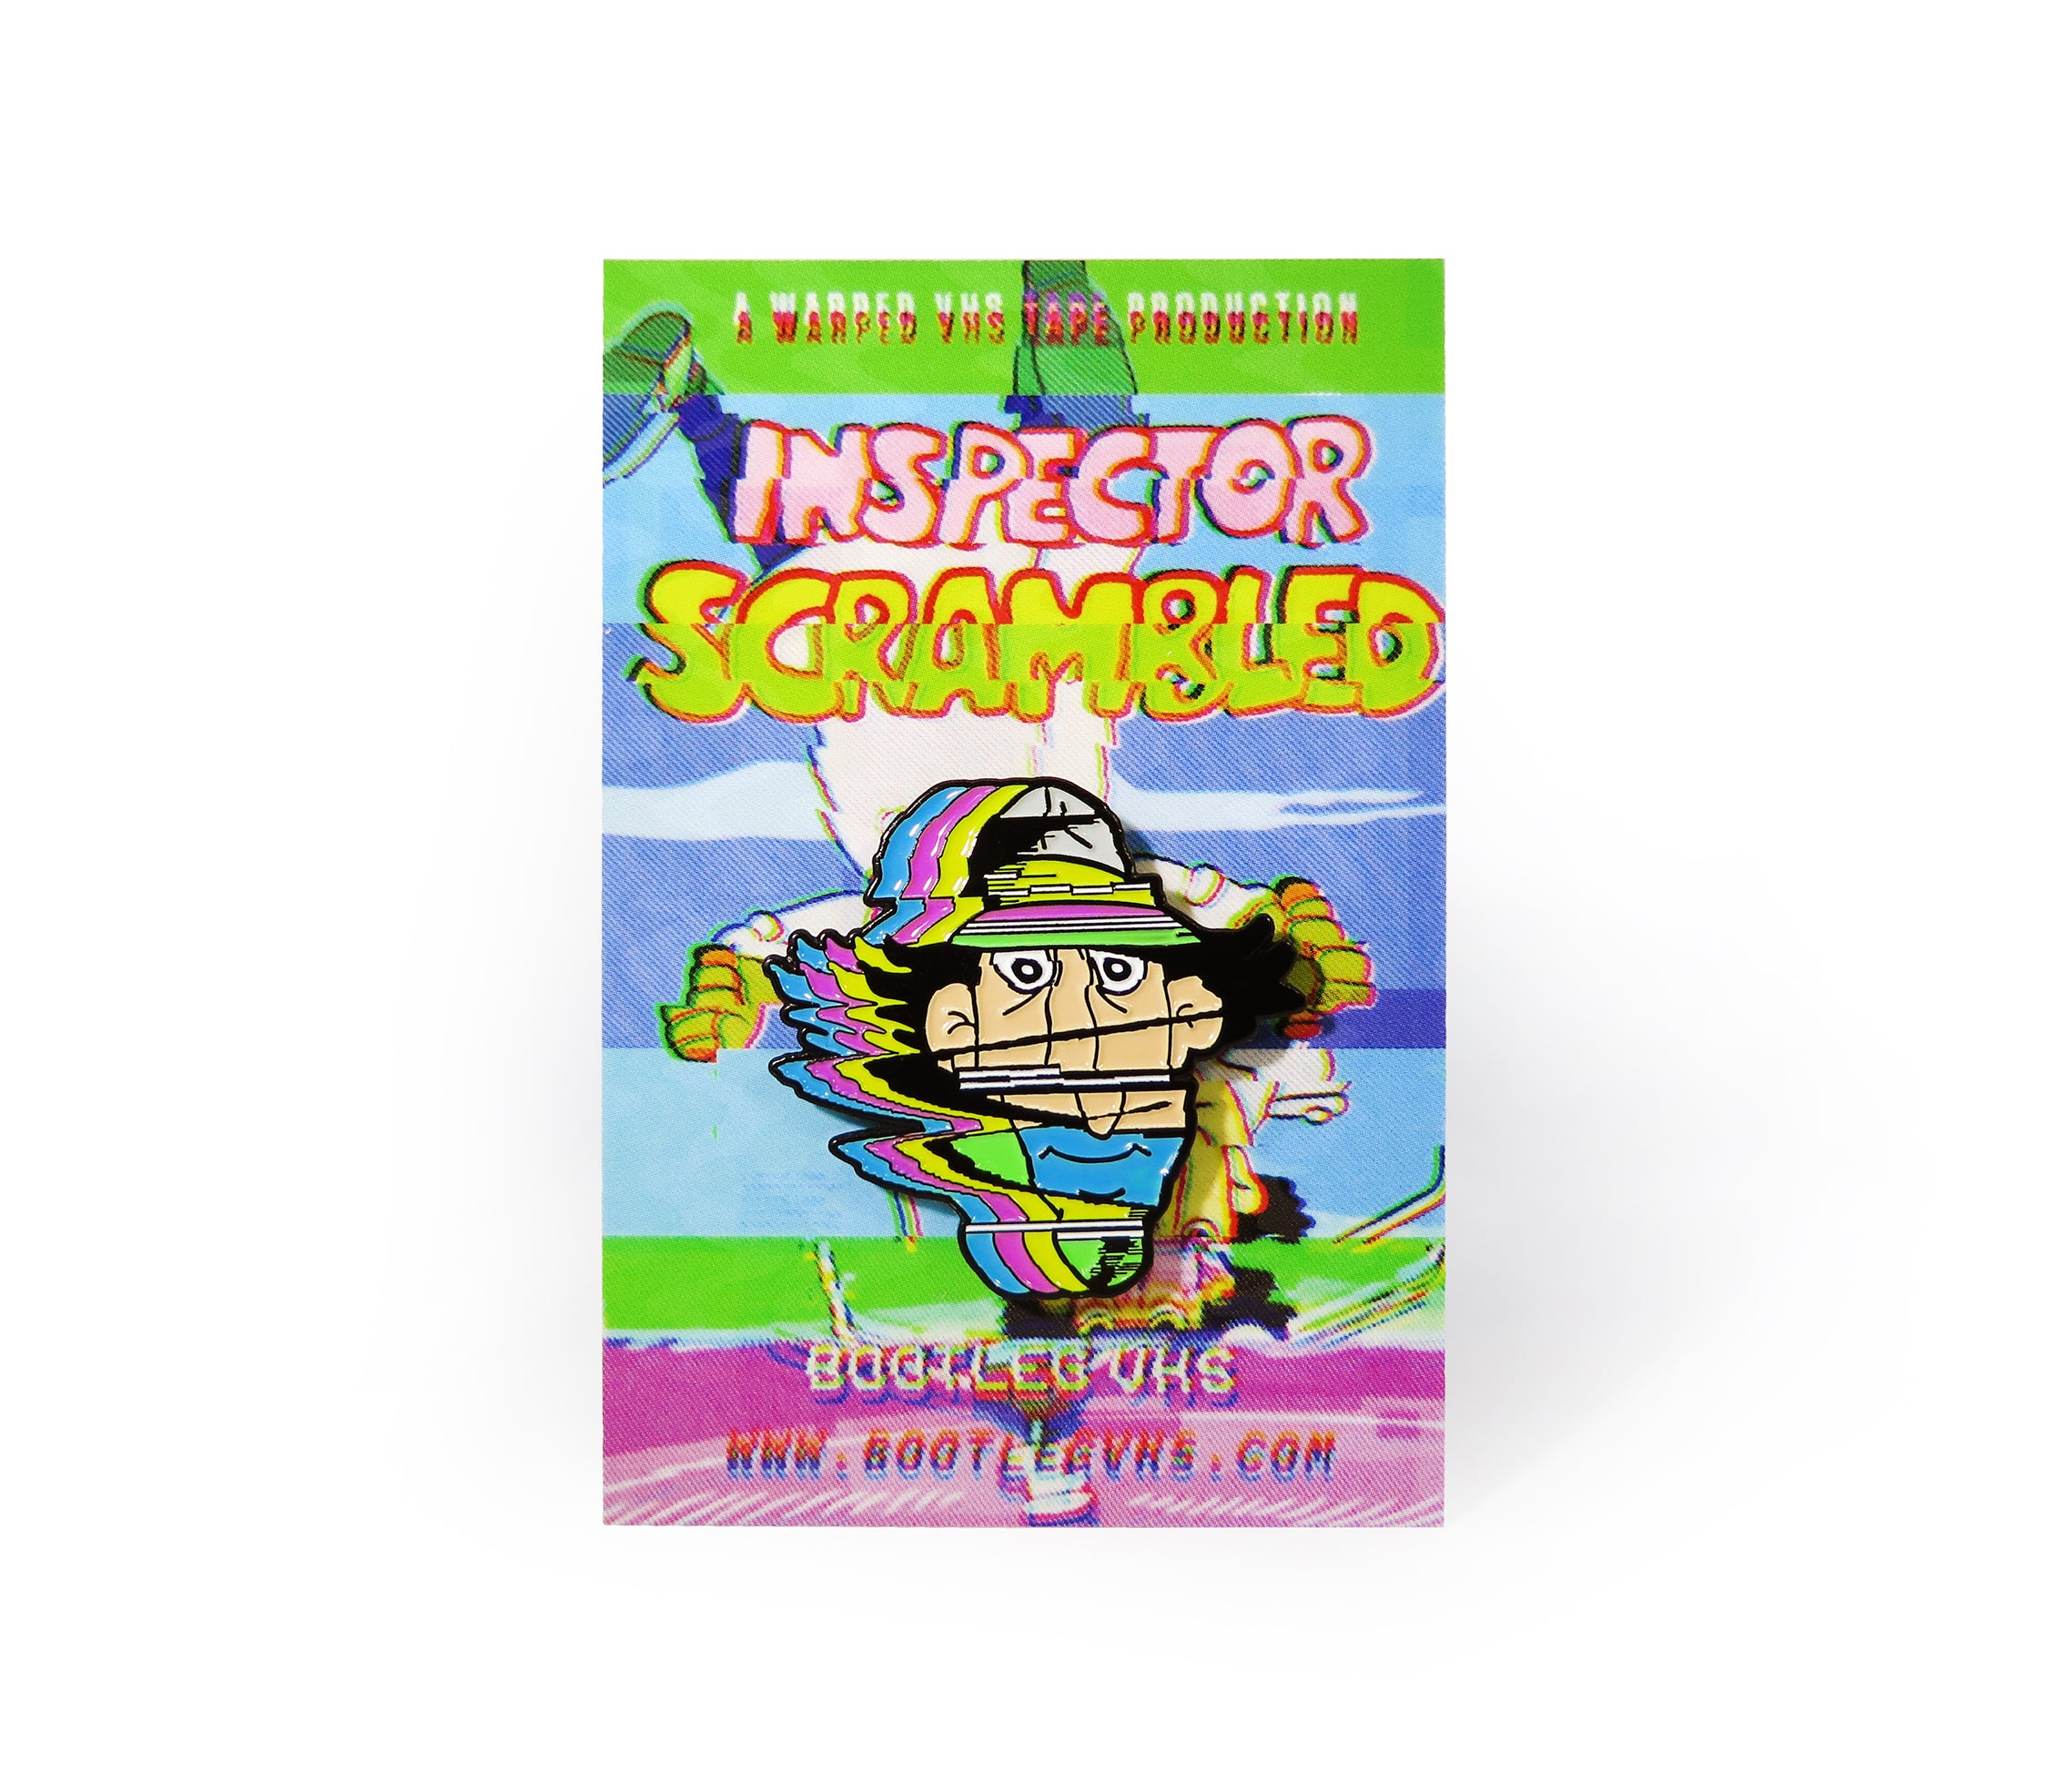 Warped Tape / Inspector Scrambled